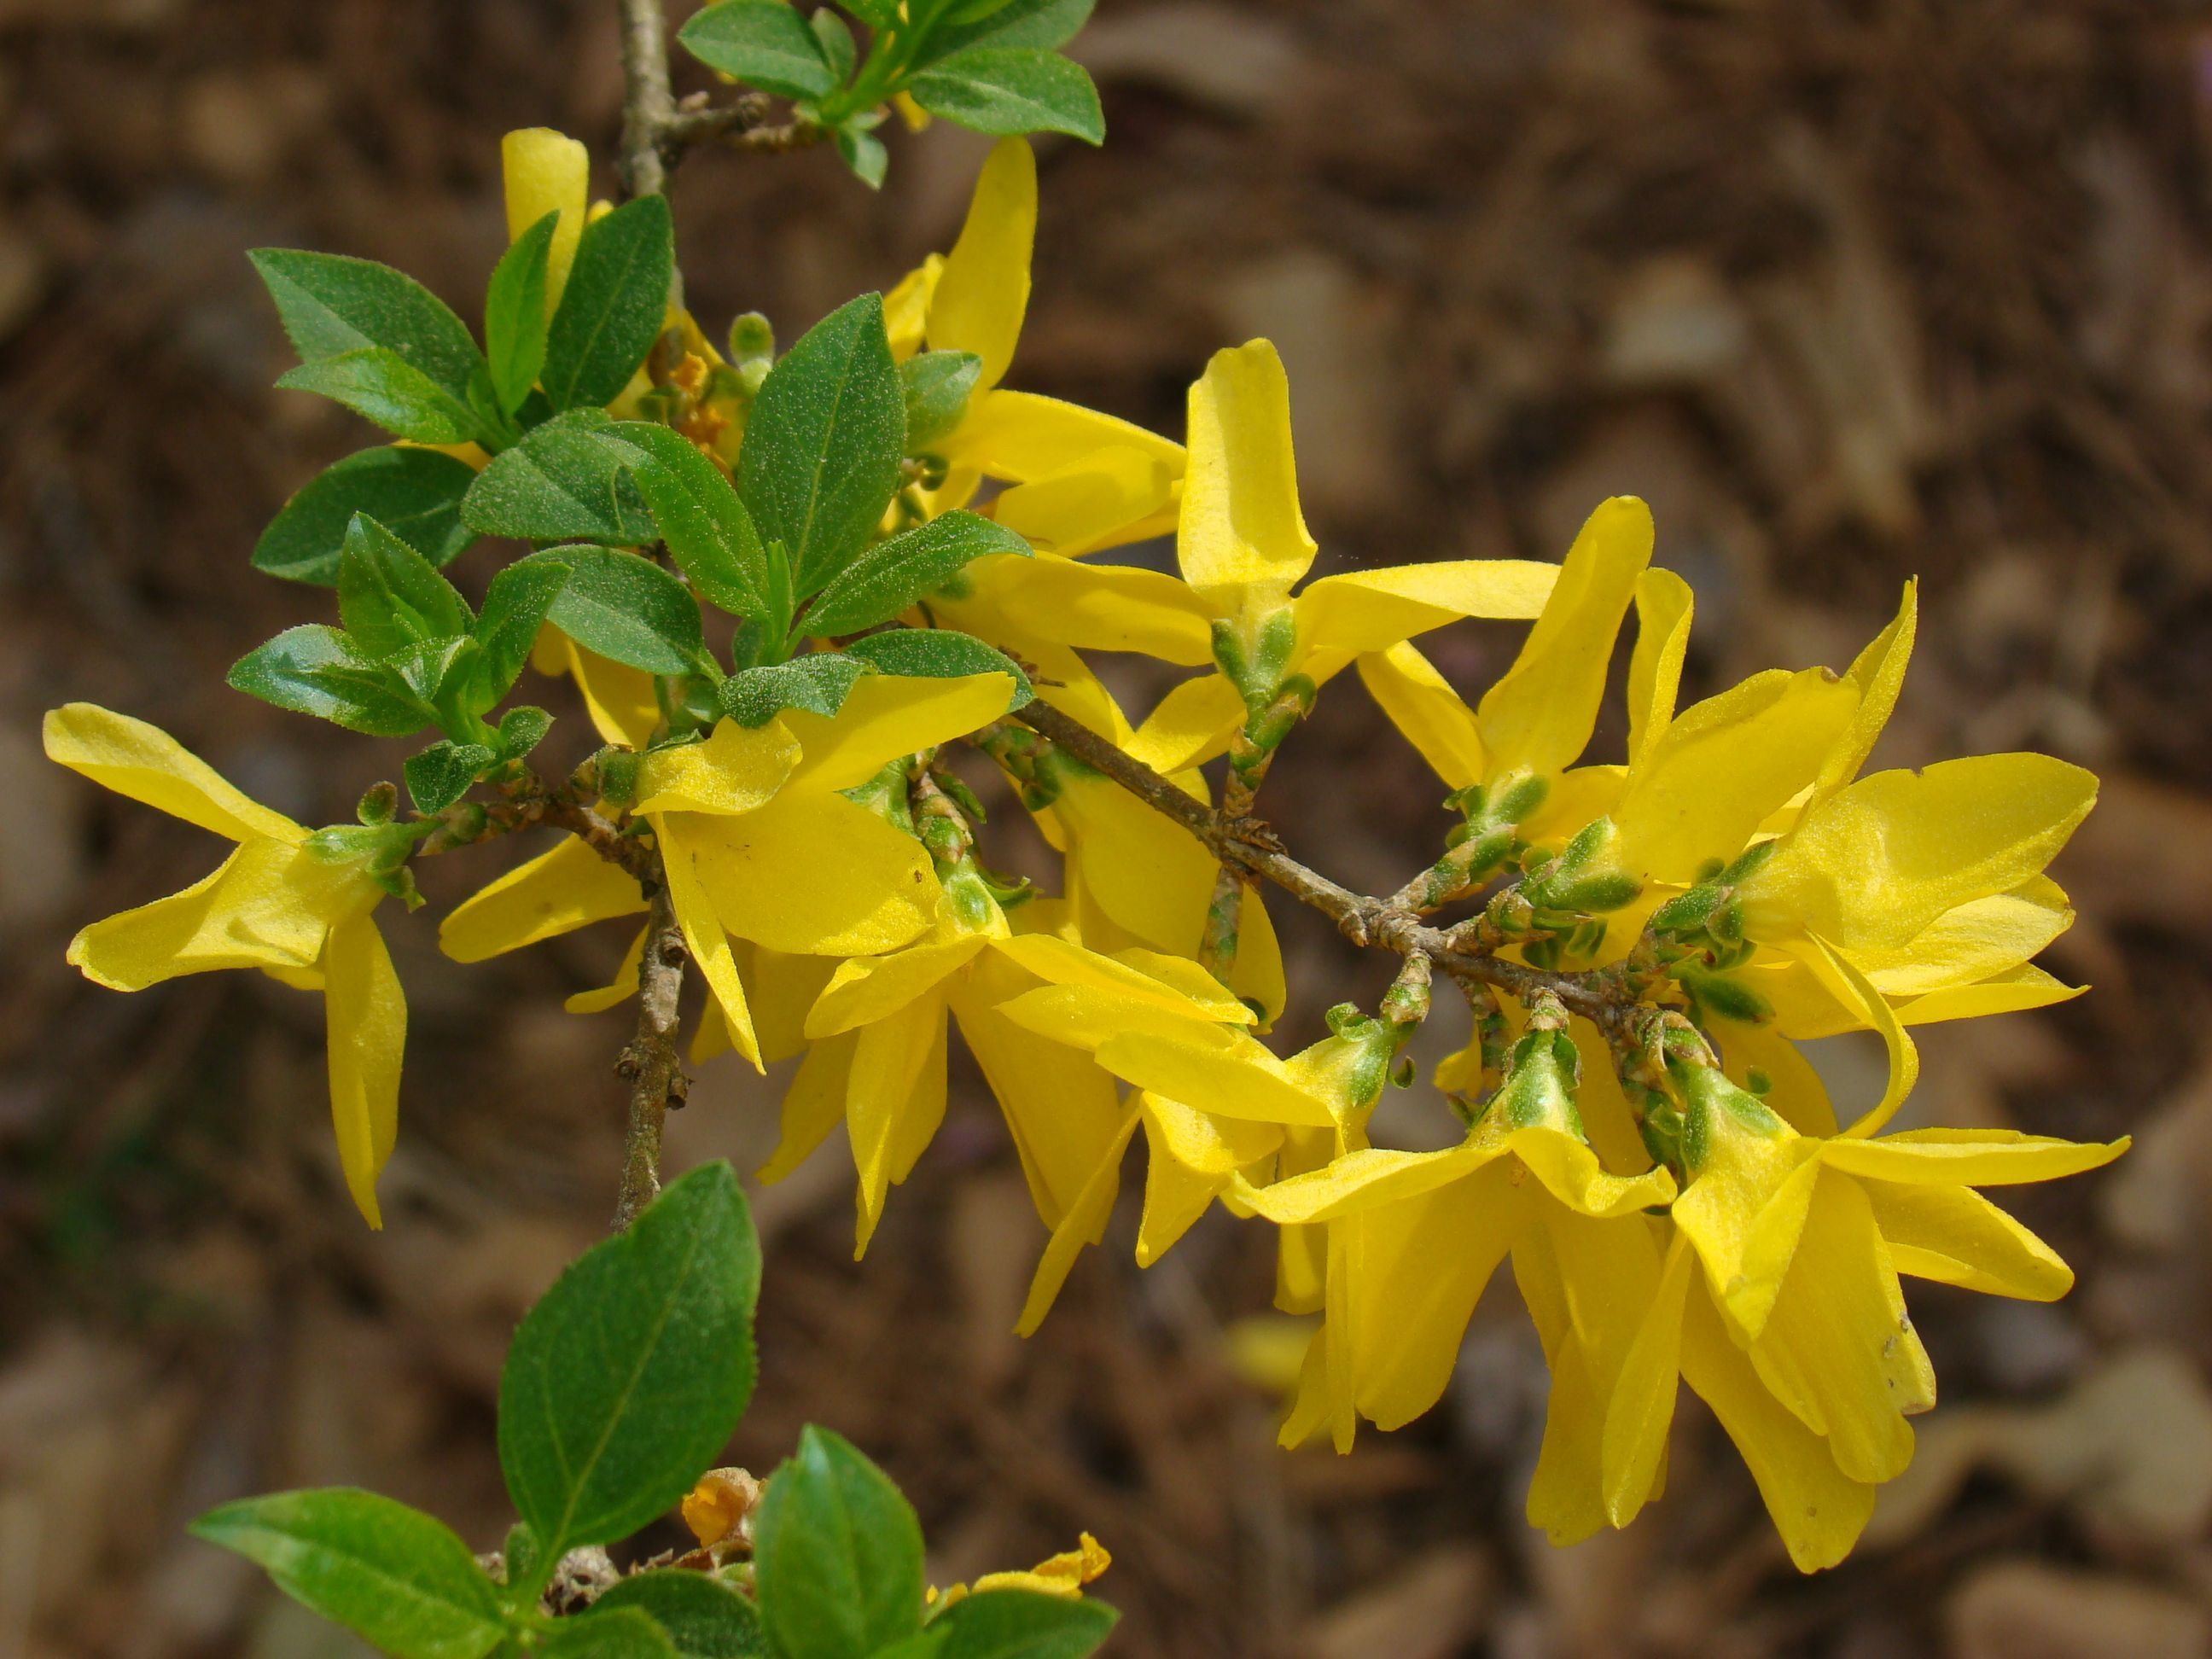 Forsythia Plants, Forsythia, Nature